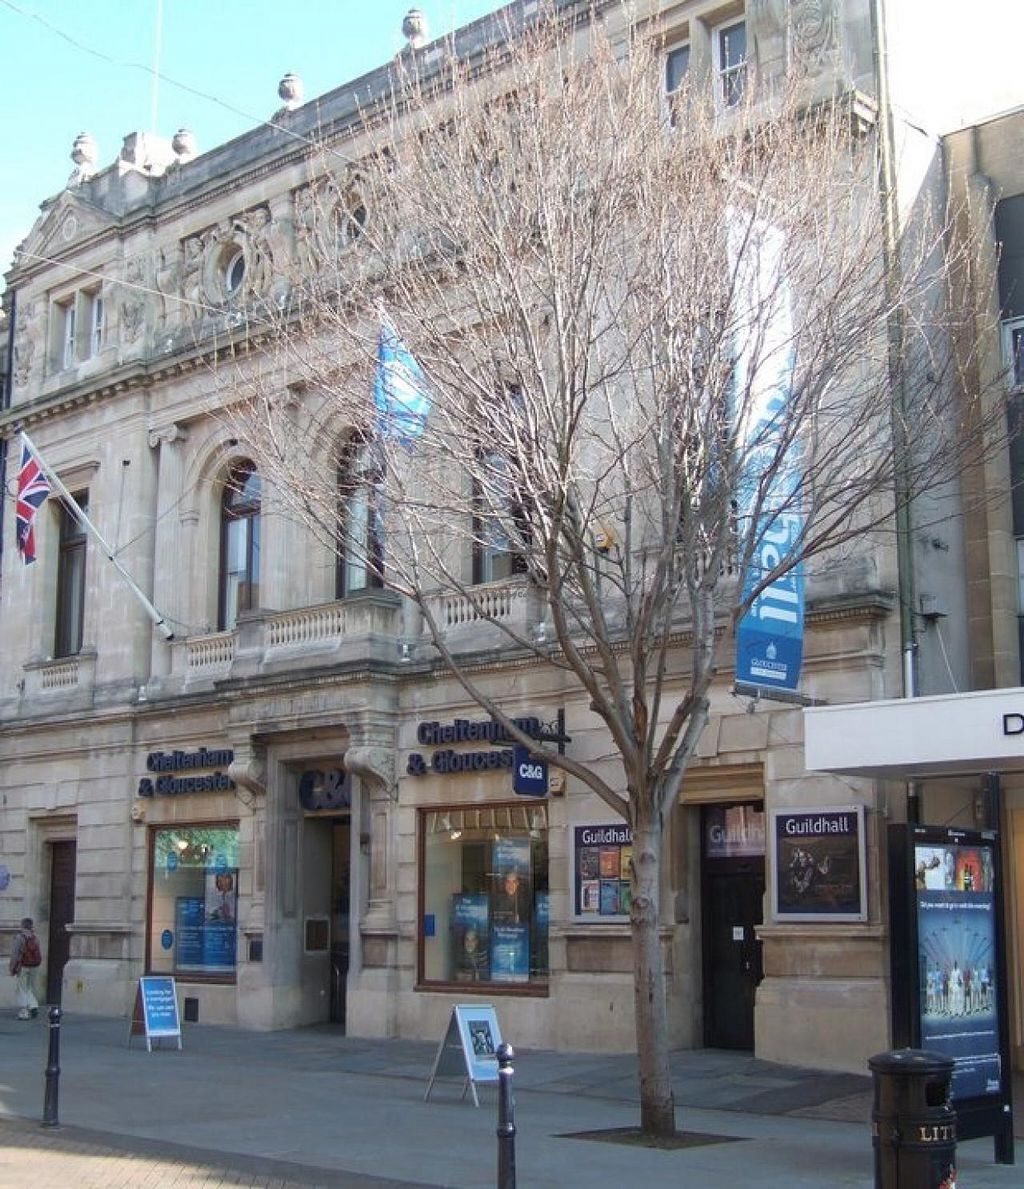 """Photo of The Cafe-Bar at Gloucester Guild Hall  by <a href=""""/members/profile/community"""">community</a> <br/>The Cafe-Bar at Gloucester Guild Hall  <br/> April 22, 2015  - <a href='/contact/abuse/image/47594/99911'>Report</a>"""